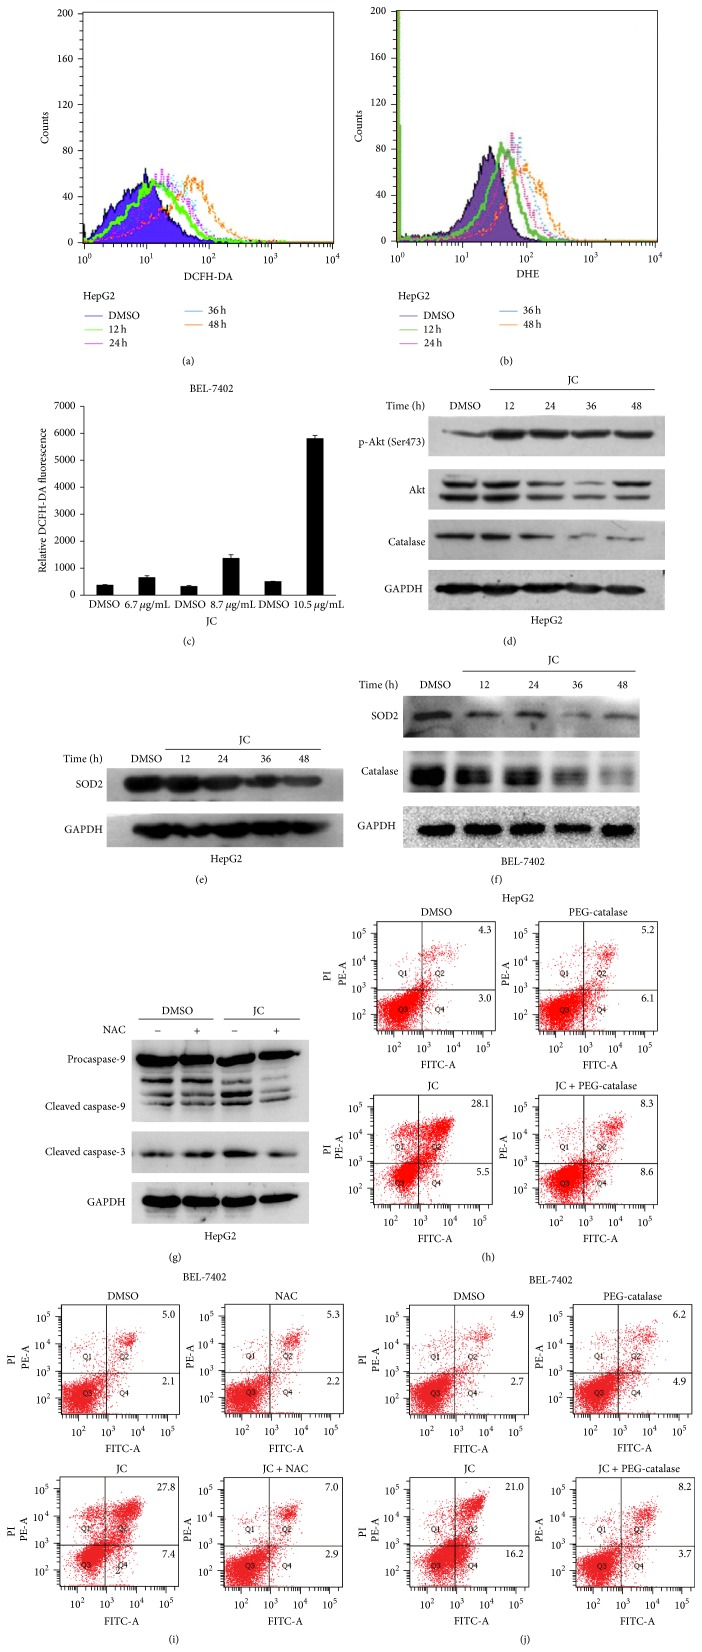 JC induces apoptosis by increasing intracellular ROS. (a, c) Effect of JC on the total ROS levels in HepG2 and BEL-7402 cells was examined by flow cytometry. HepG2 cells were treated with DMSO or 8 μ g/mL JC for 12, 24, 36, and 48 hours (a). BEL-7402 cells were treated with DMSO or 6.7, 8.7, and 10.5 μ g/mL of JC for 12 hours (c). (b) Effect of JC on superoxide anion levels in HepG2 cells was examined by flow cytometry. The levels of ROS in HepG2 cells were treated with either DMSO or 8 μ g/mL of JC for 12, 24, 36, and 48 hours and analyzed by flow cytometry. (d–f) Effects of JC on catalase and SOD2 expression and Akt activation were determined by Western blot analysis. HepG2 cells were treated with either DMSO or 8 μ g/mL of JC for the indicated times (d and e). BEL-7402 cells were treated with DMSO or 8.7 μ g/mL of JC for the indicated times (f). GAPDH was used as a loading control. (g–j) NAC and PEG-catalase abrogate JC-induced apoptosis. HepG2 cells were pretreated with NAC and PEG-catalase for 1 hour. HepG2 cells were treated with either DMSO or 8 μ g/mL of JC for 36 hours and detected by Western blot analysis (g) or flow cytometry analysis (h). GAPDH was used as a loading control. BEL-7402 cells were treated with either DMSO or 8.7 μ g/mL of JC for 24 hours and detected by flow cytometry analysis (i and j).